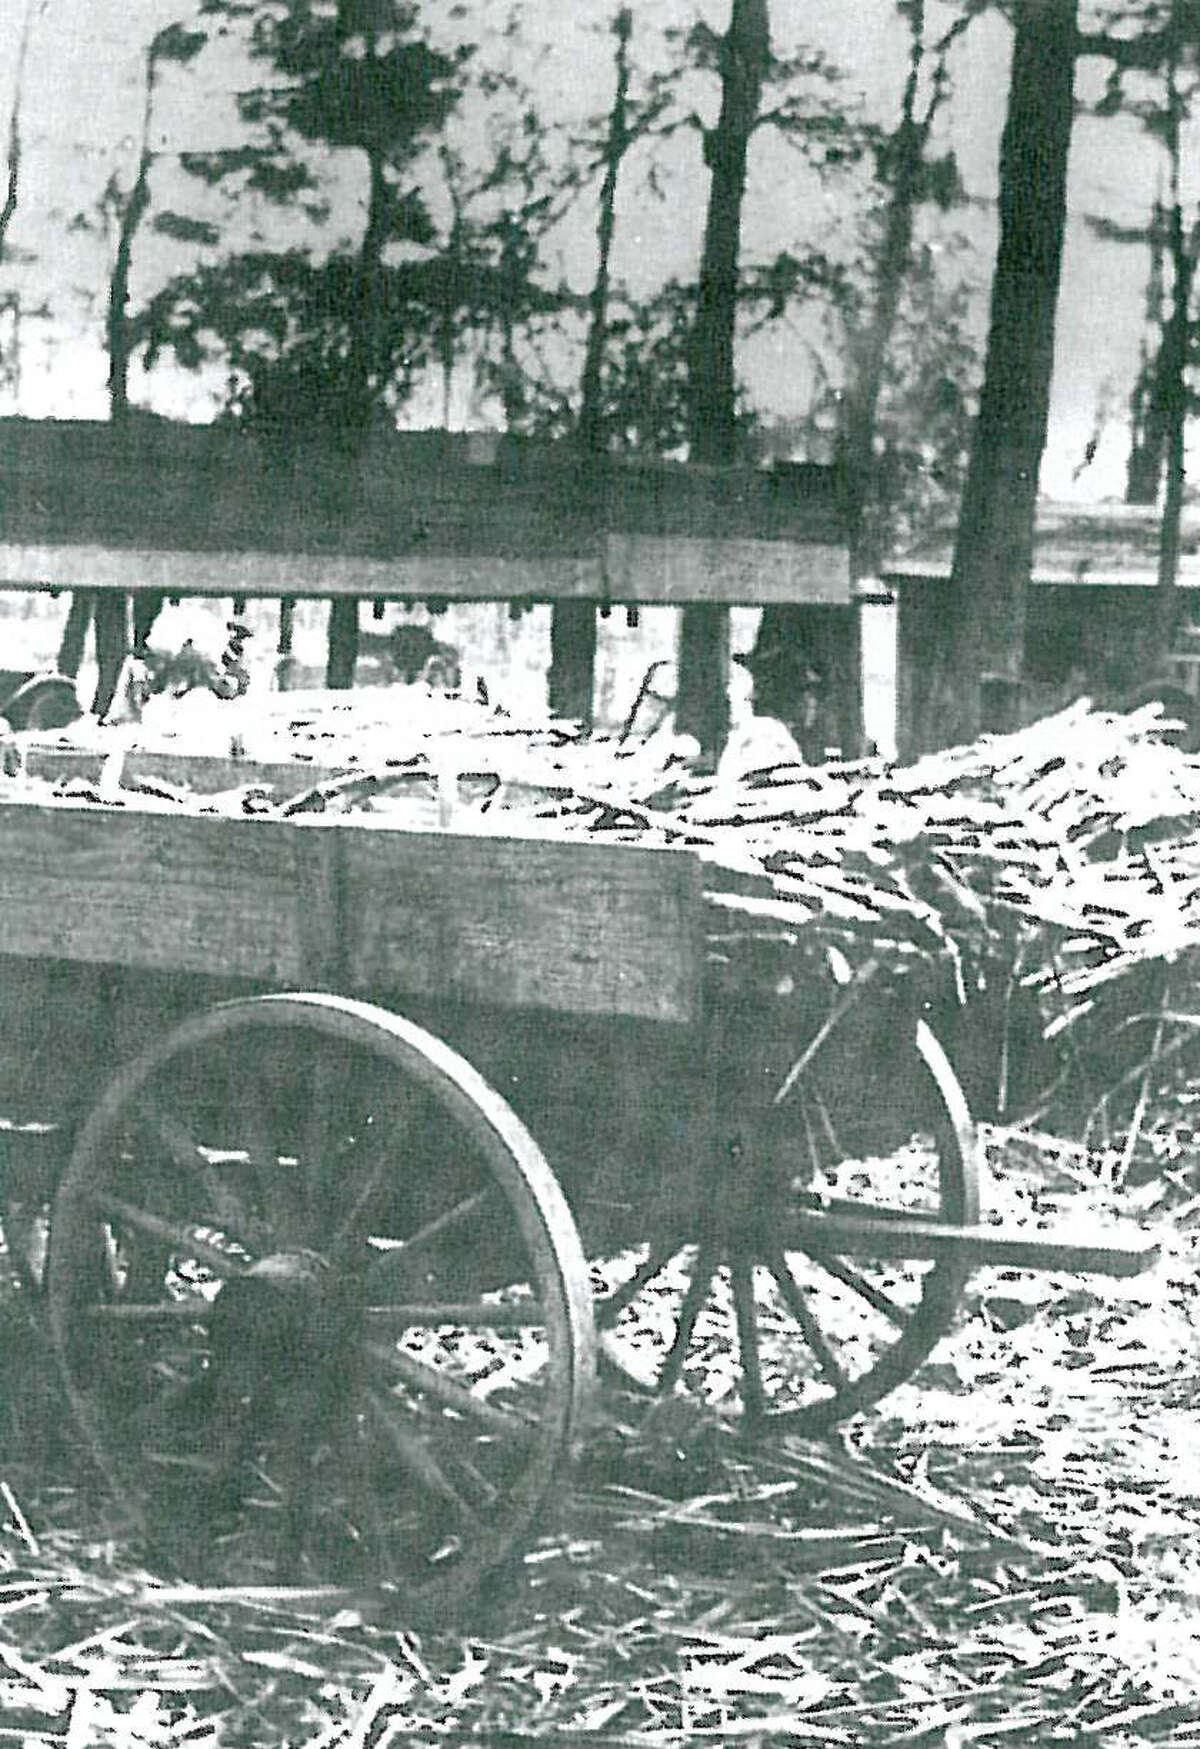 """Sugar cane being brought to a sugar cane mill. Bill Fritch of Magnolia brought his sugar cane to the sugar cane mill on Lake Creek between Montgomery and Magnolia around 1920. Photo from """"Montgomery County: Picture of a Dream Coming True"""" courtesy of Celeste Graves."""